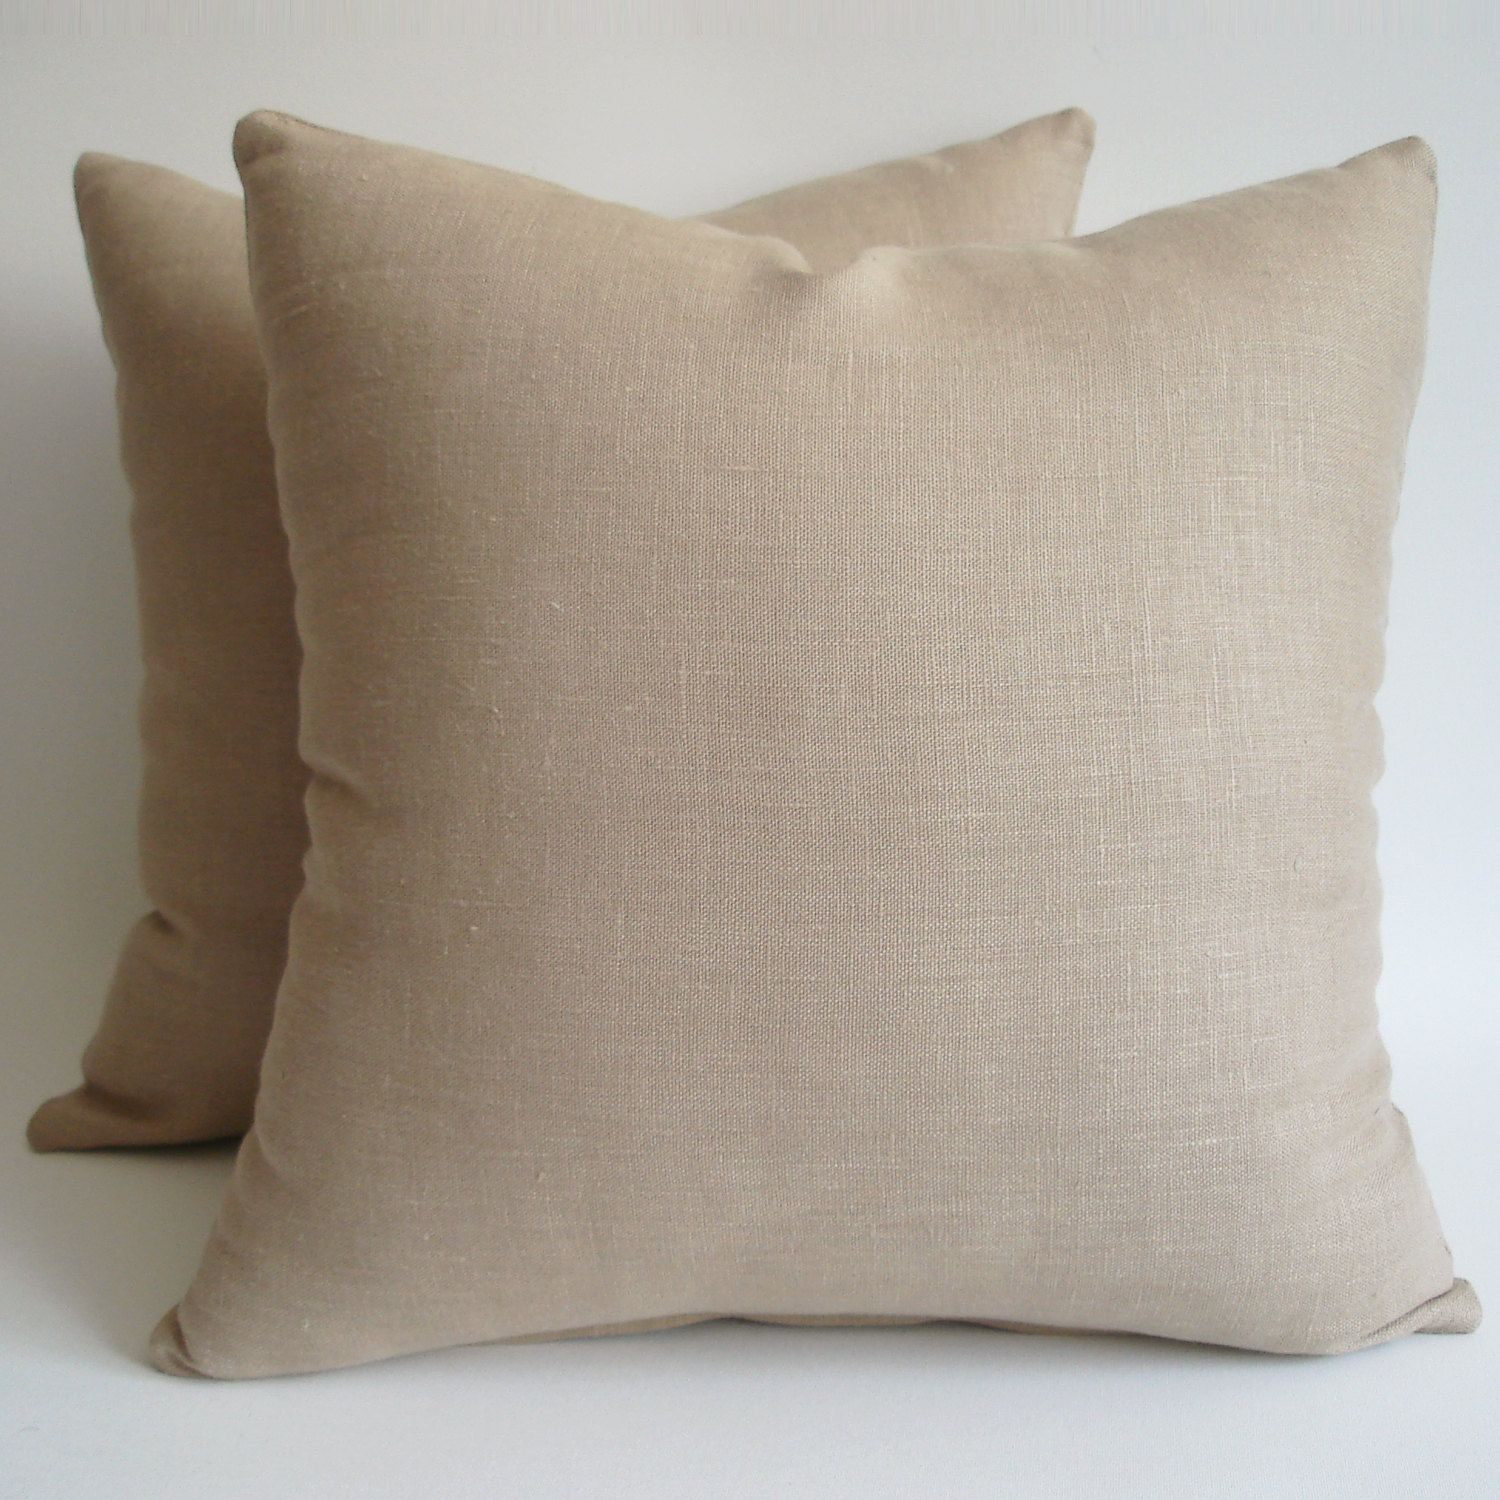 Decorative Linen Pillows : Sukan / SET(2 piece) Off Beige Linen Pillows Decorative Pillows Throw Pillow Covers Accent ...